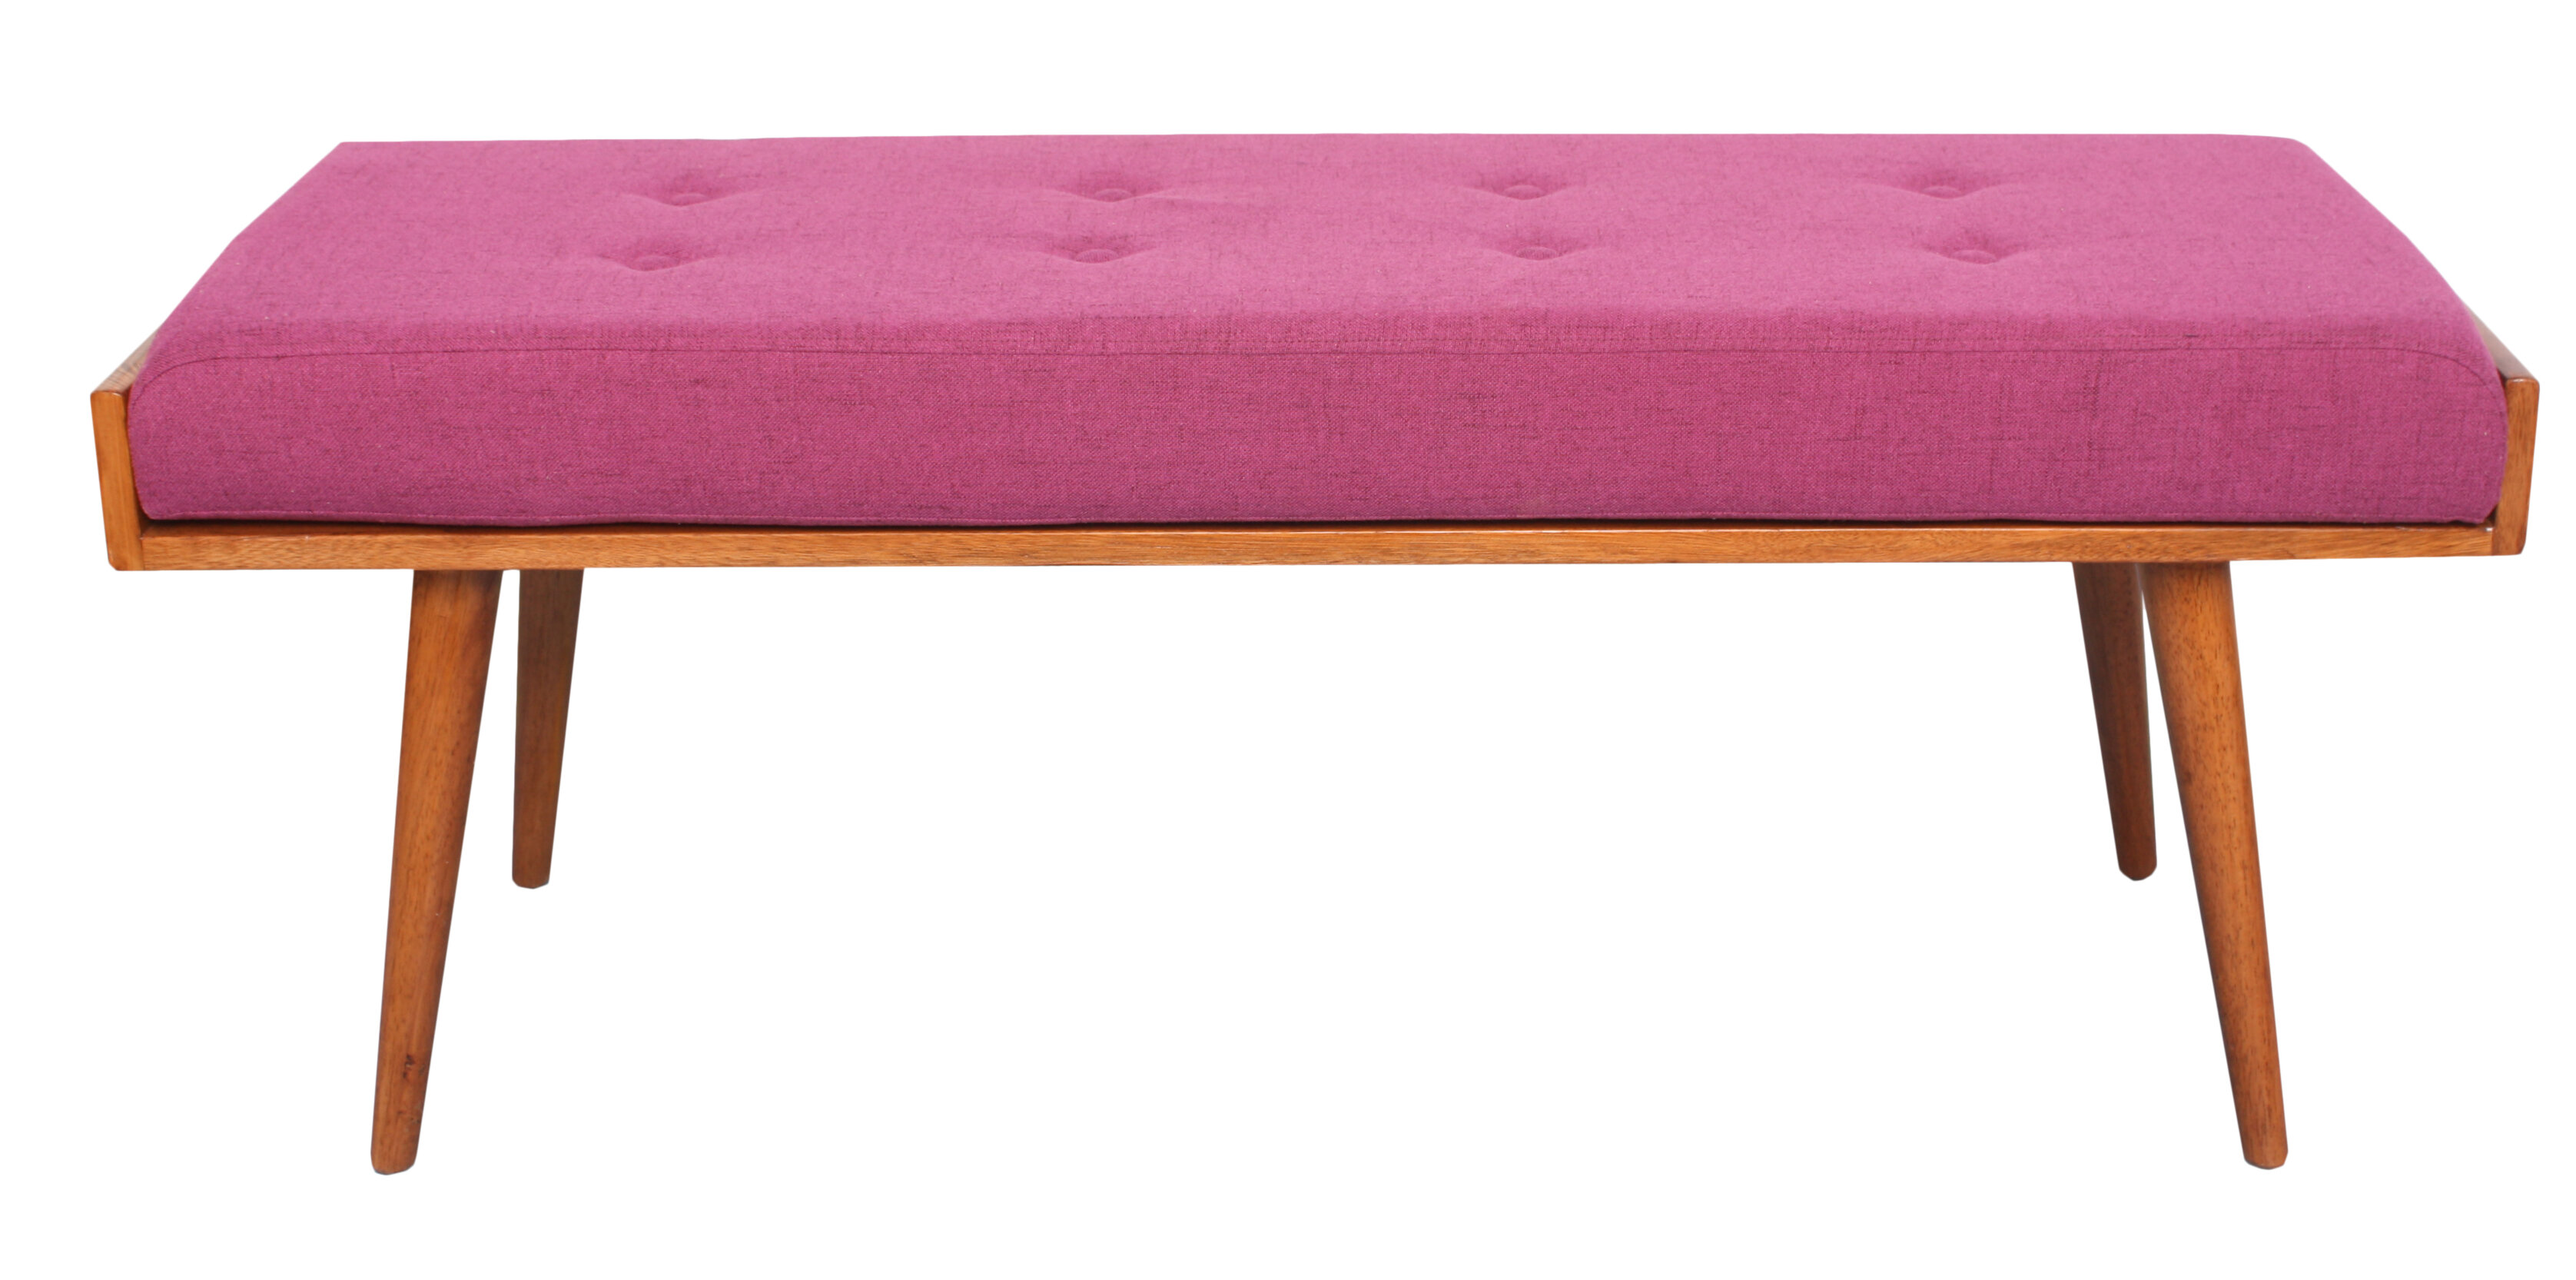 home aced purple product today free overstock markelo garden velvet bench shipping